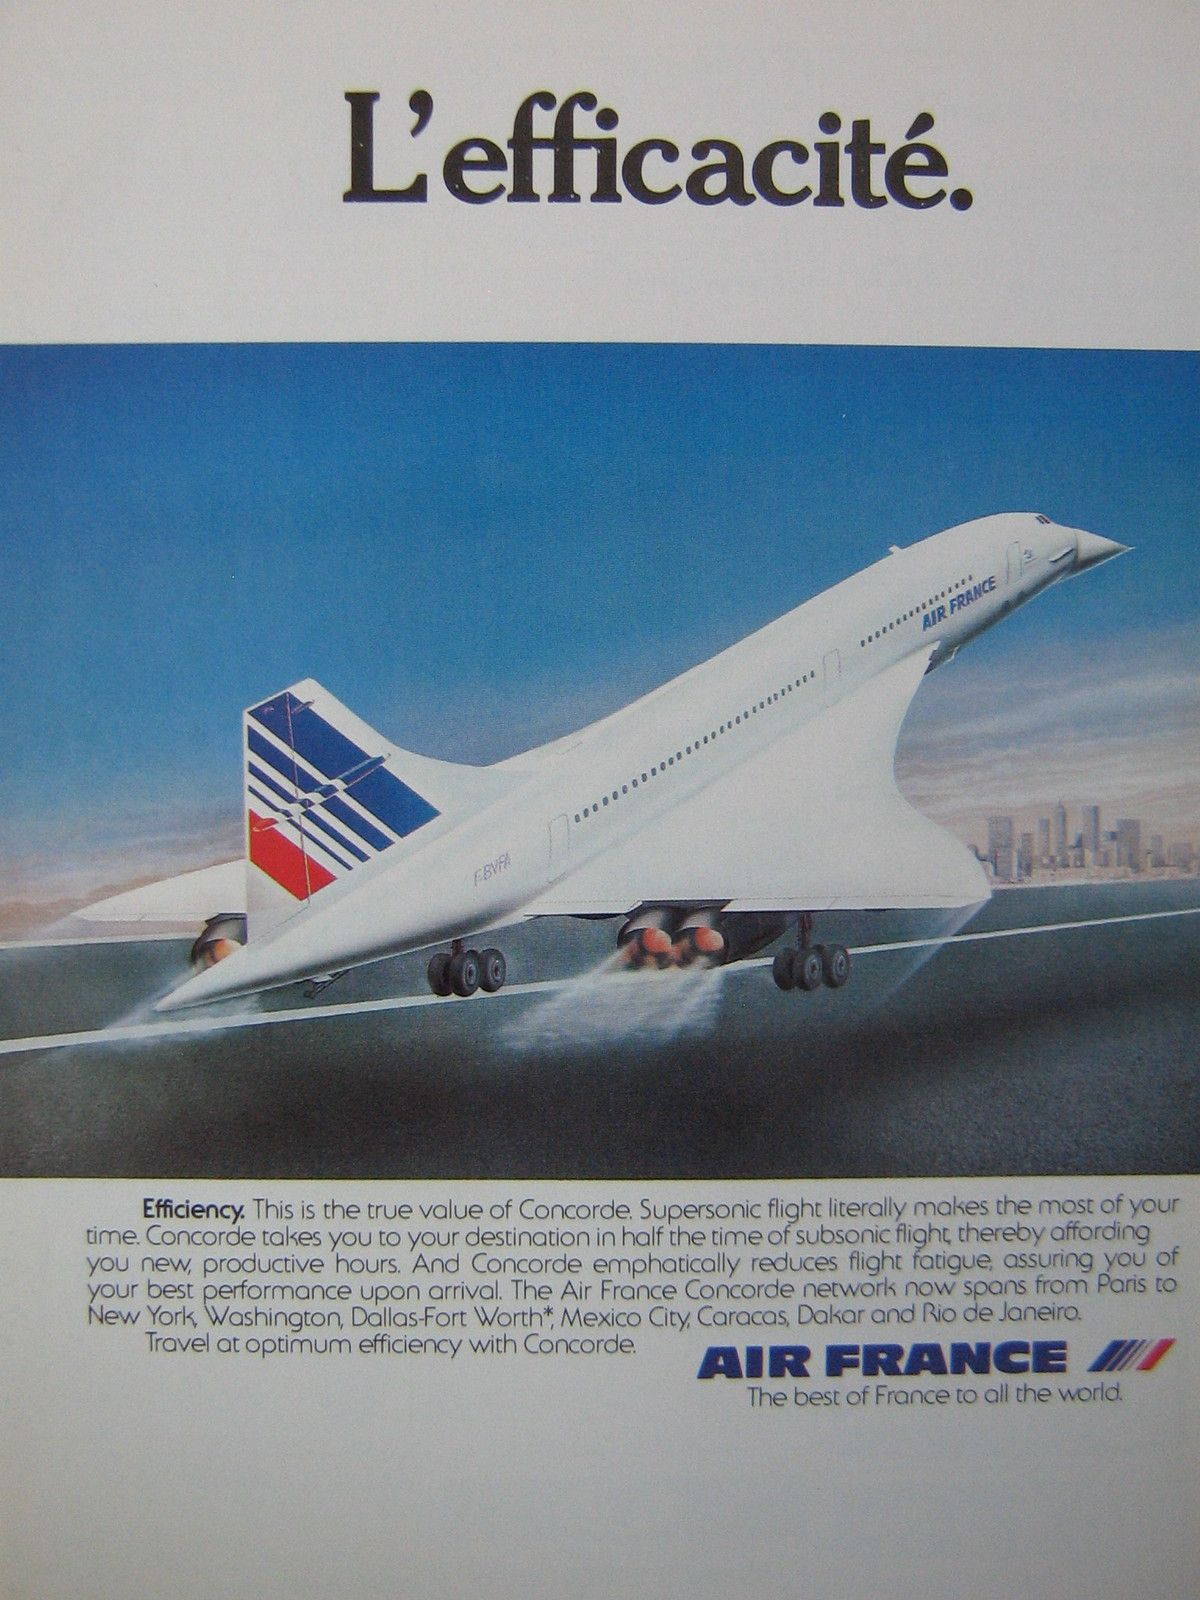 The Concorde could travel almost as fast as your dreams of